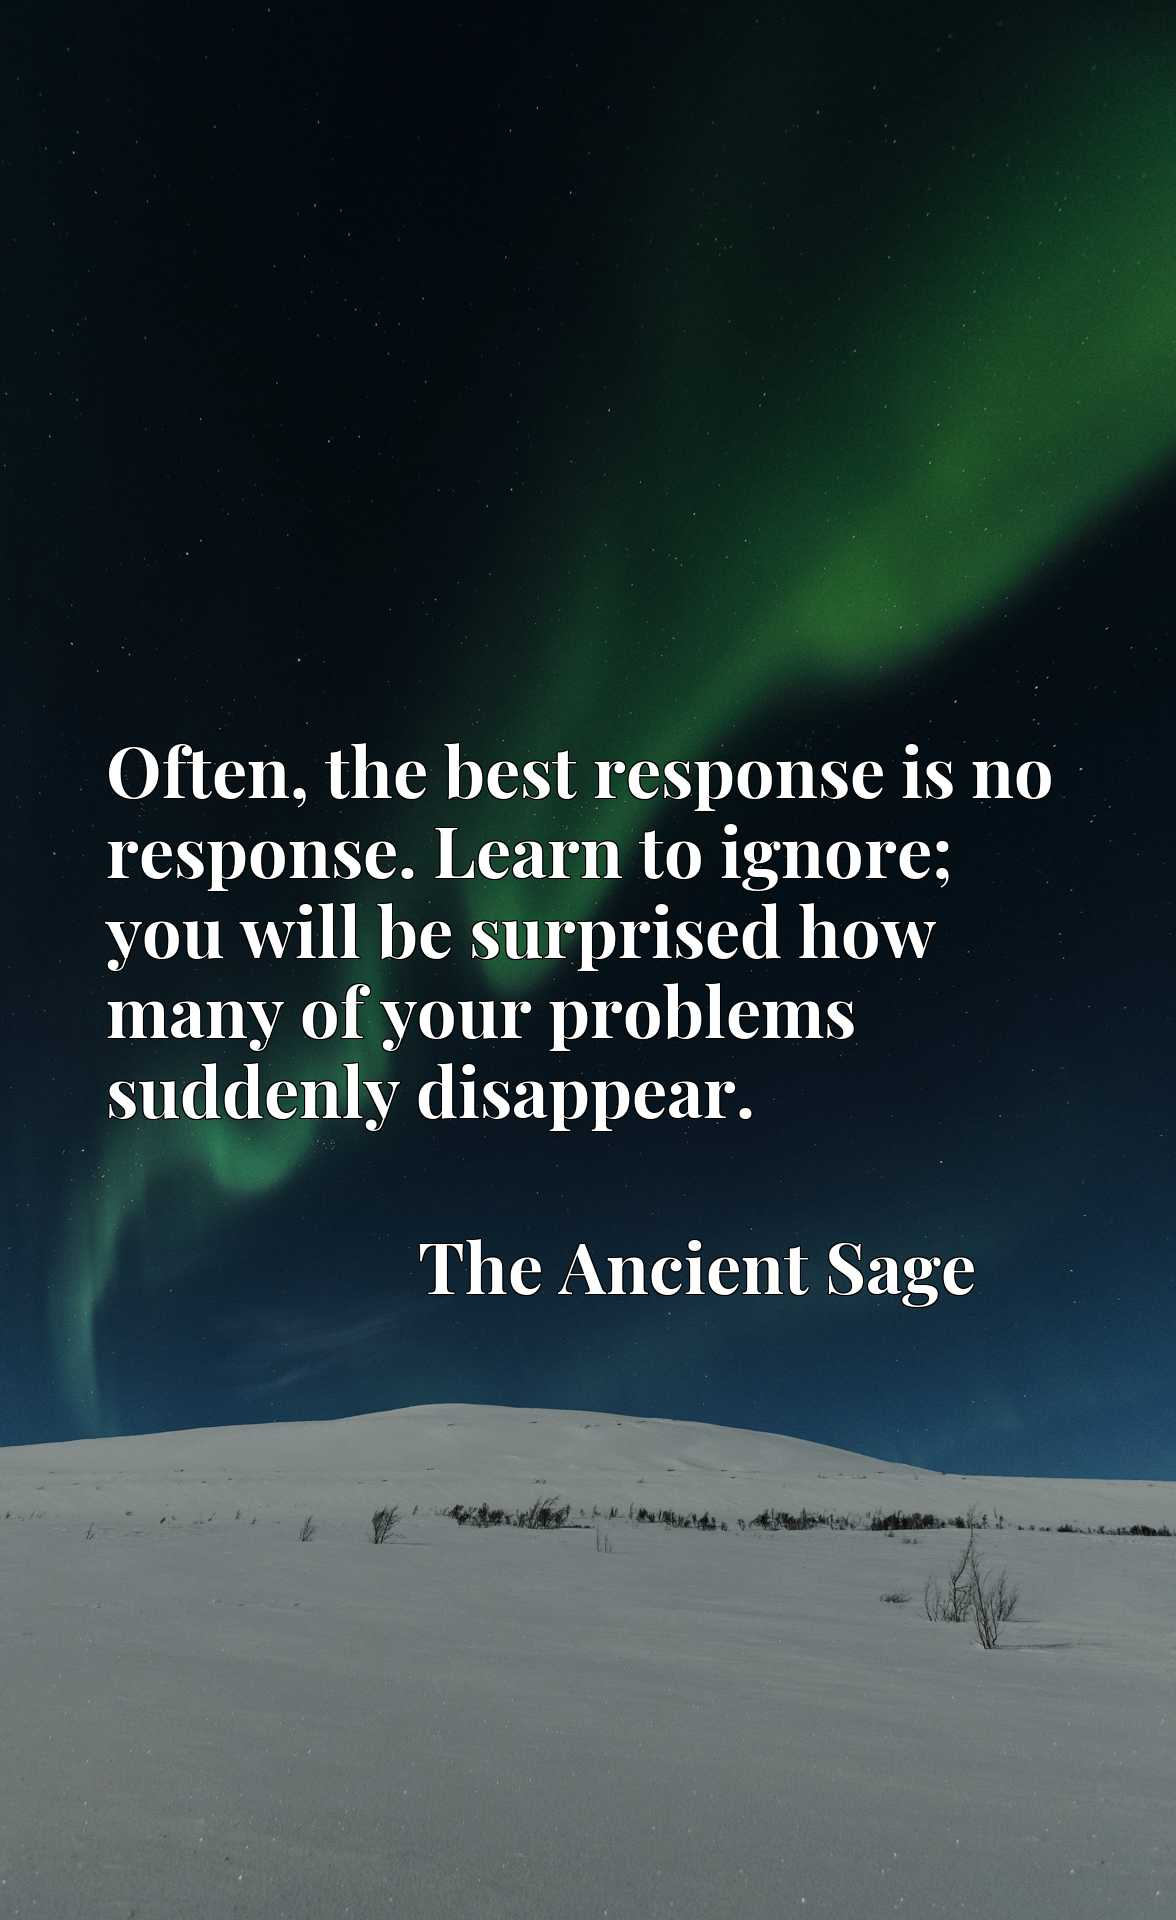 Quote Picture :Often, the best response is no response. Learn to ignore; you will be surprised how many of your problems suddenly disappear.